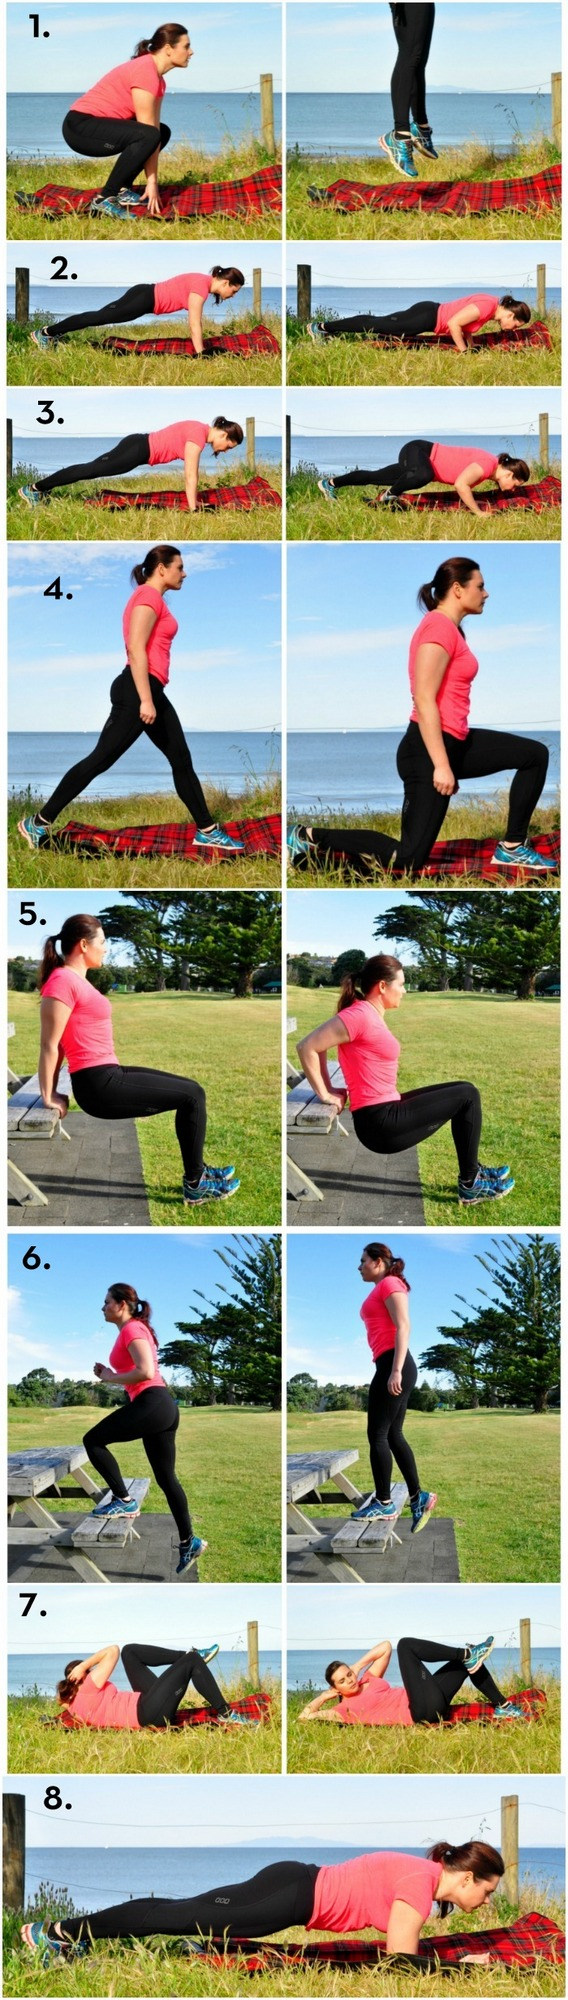 Exercise You Can Do At The Park